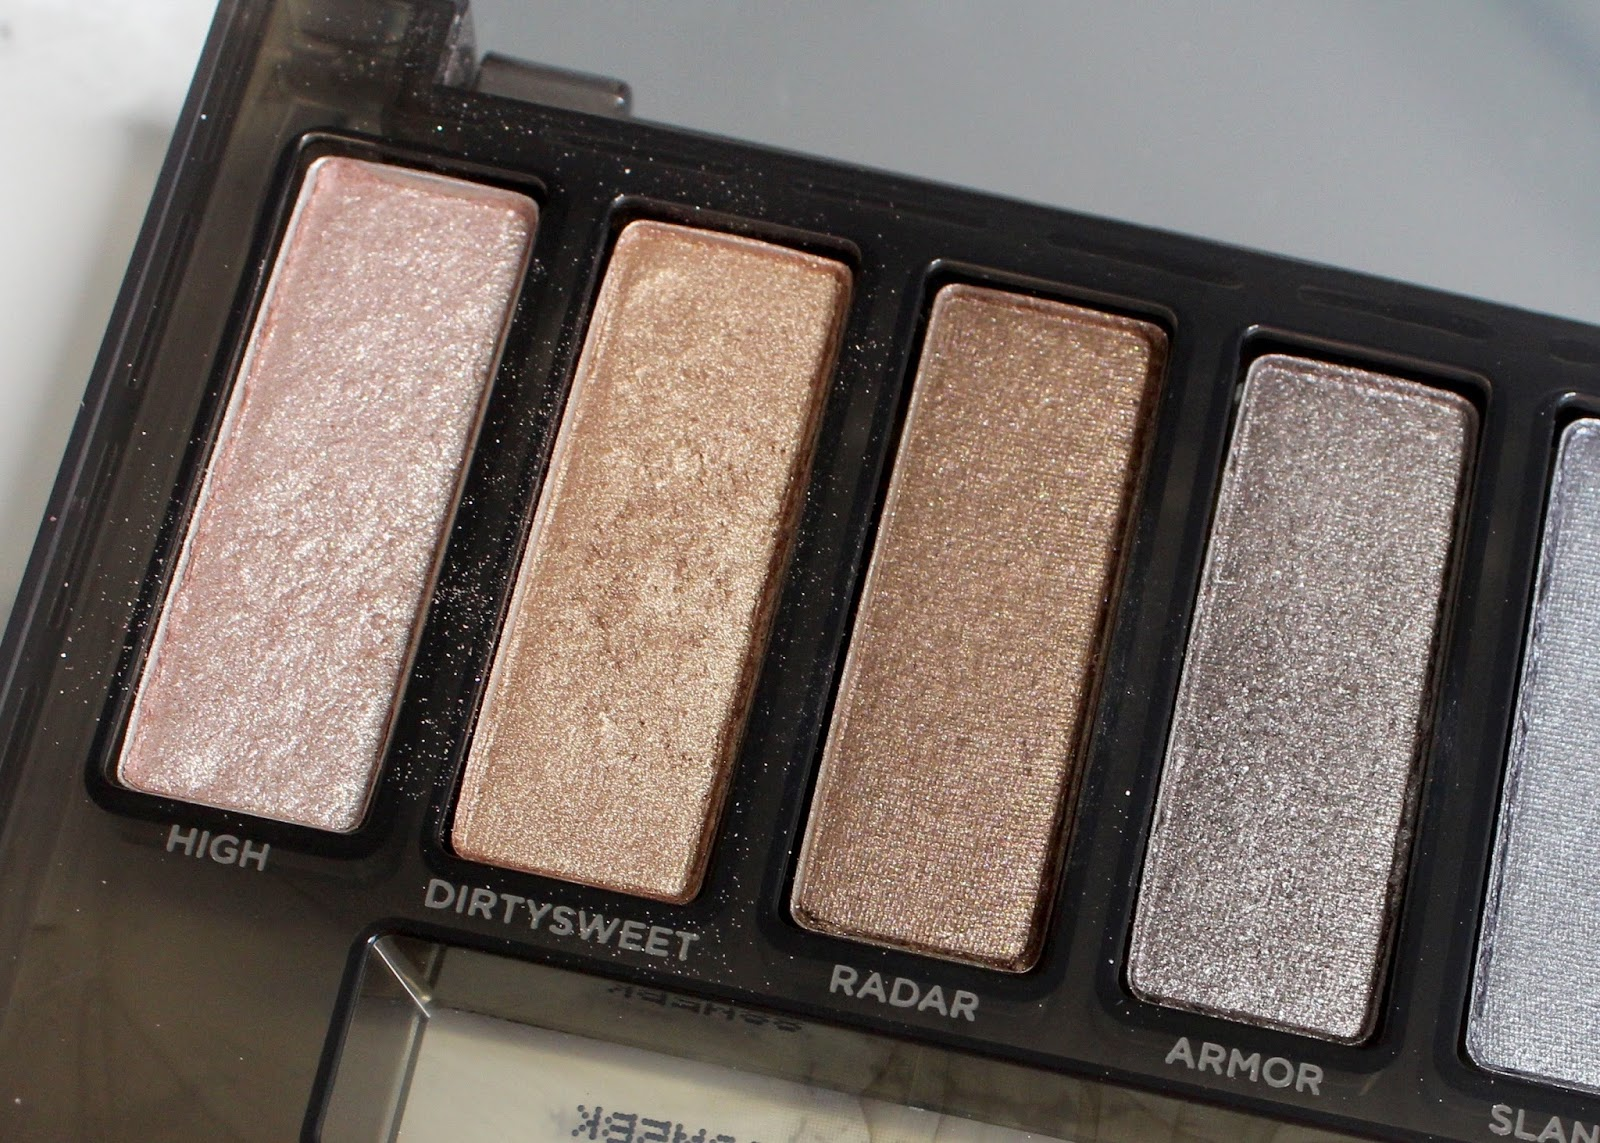 Urban Decay Naked Smoky palette review and giveaway